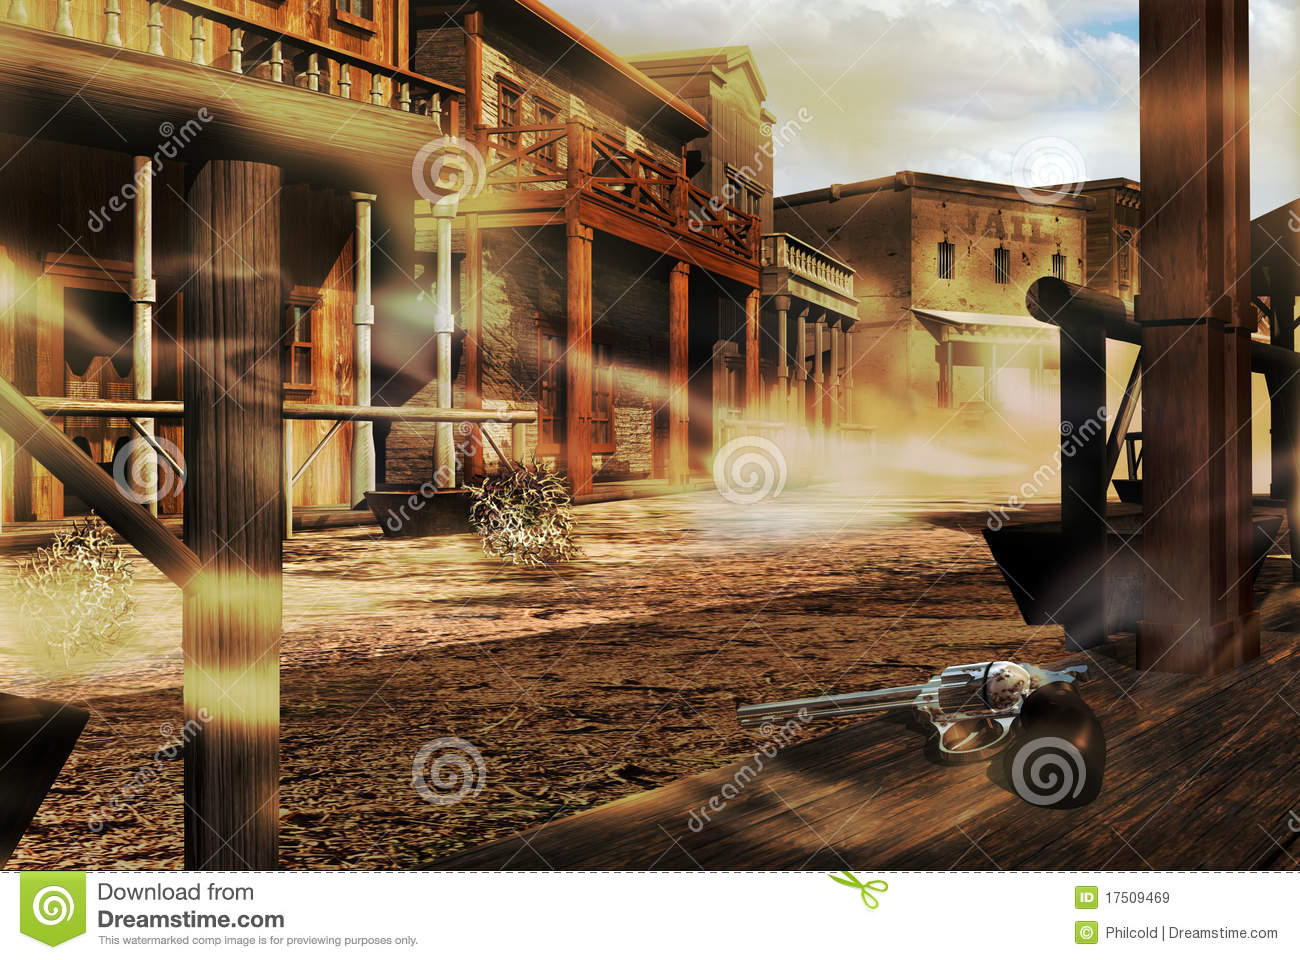 Free Wallpaper Old Cars Ghost Western Town Stock Illustration Image Of City